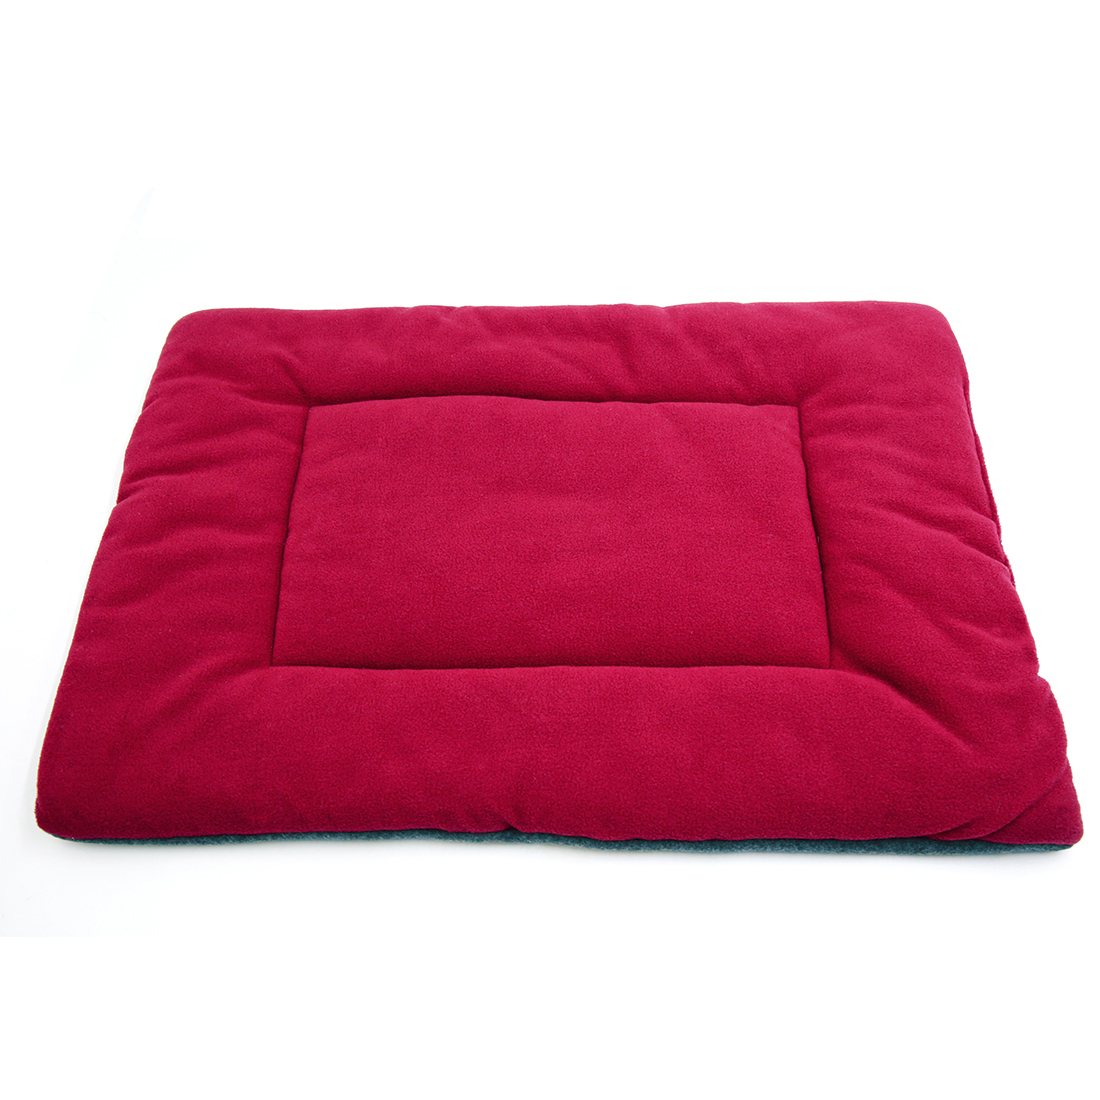 Fleece Reversible Mat Cushion Pad Bed for Dog Cat Puppy Pet Burgundy M